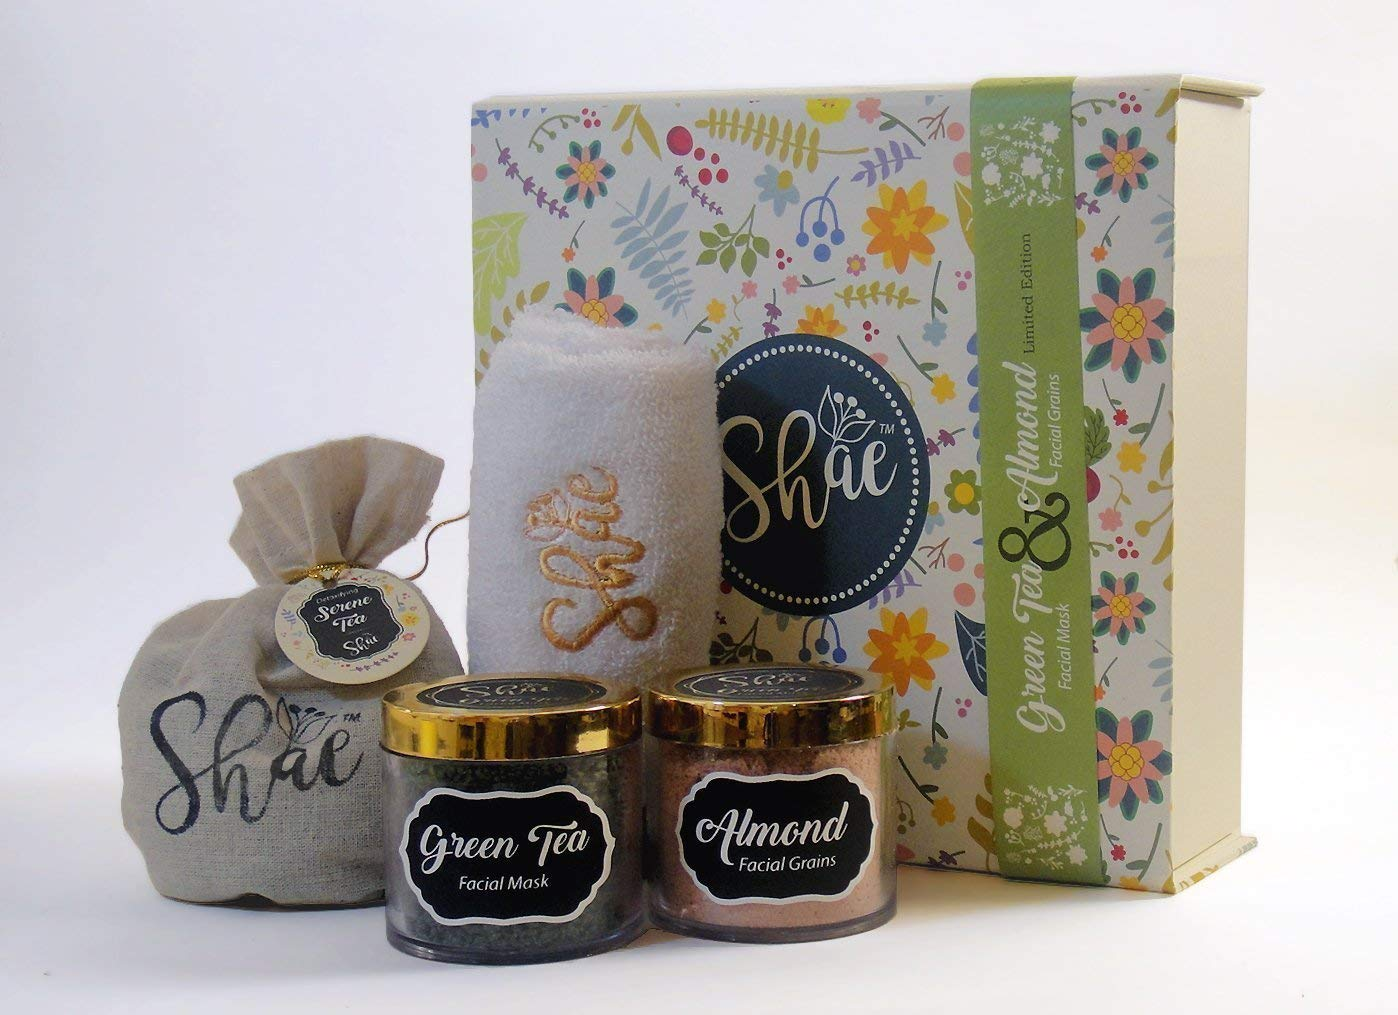 Green Tea Facial Mask & Almond Facial Grains - Shae Spa Gift Kit